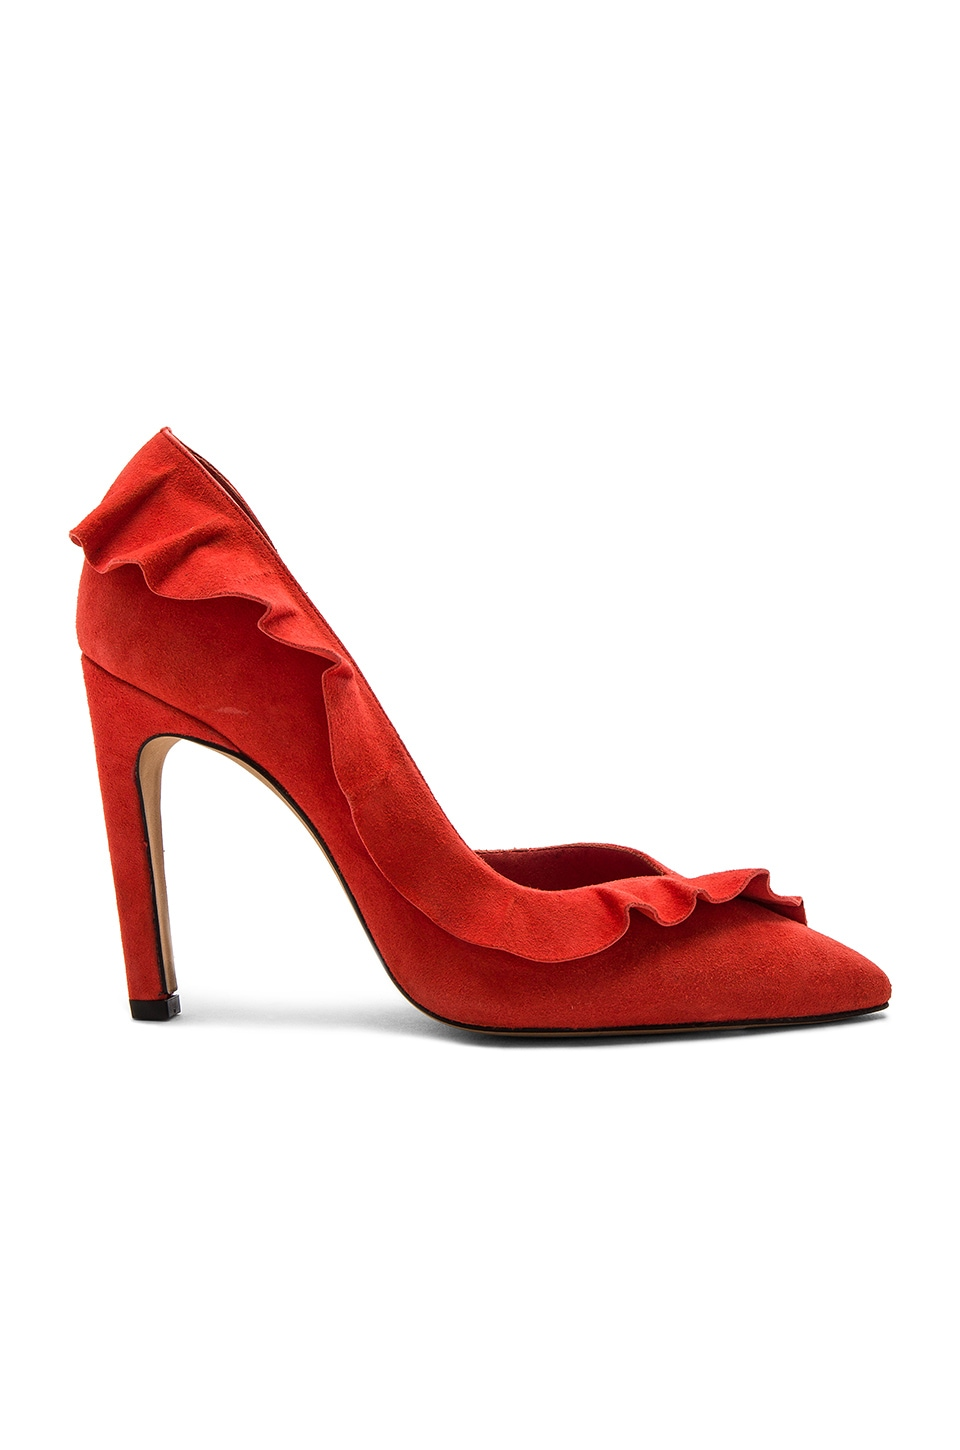 IRO Escavol Pumps in Coral